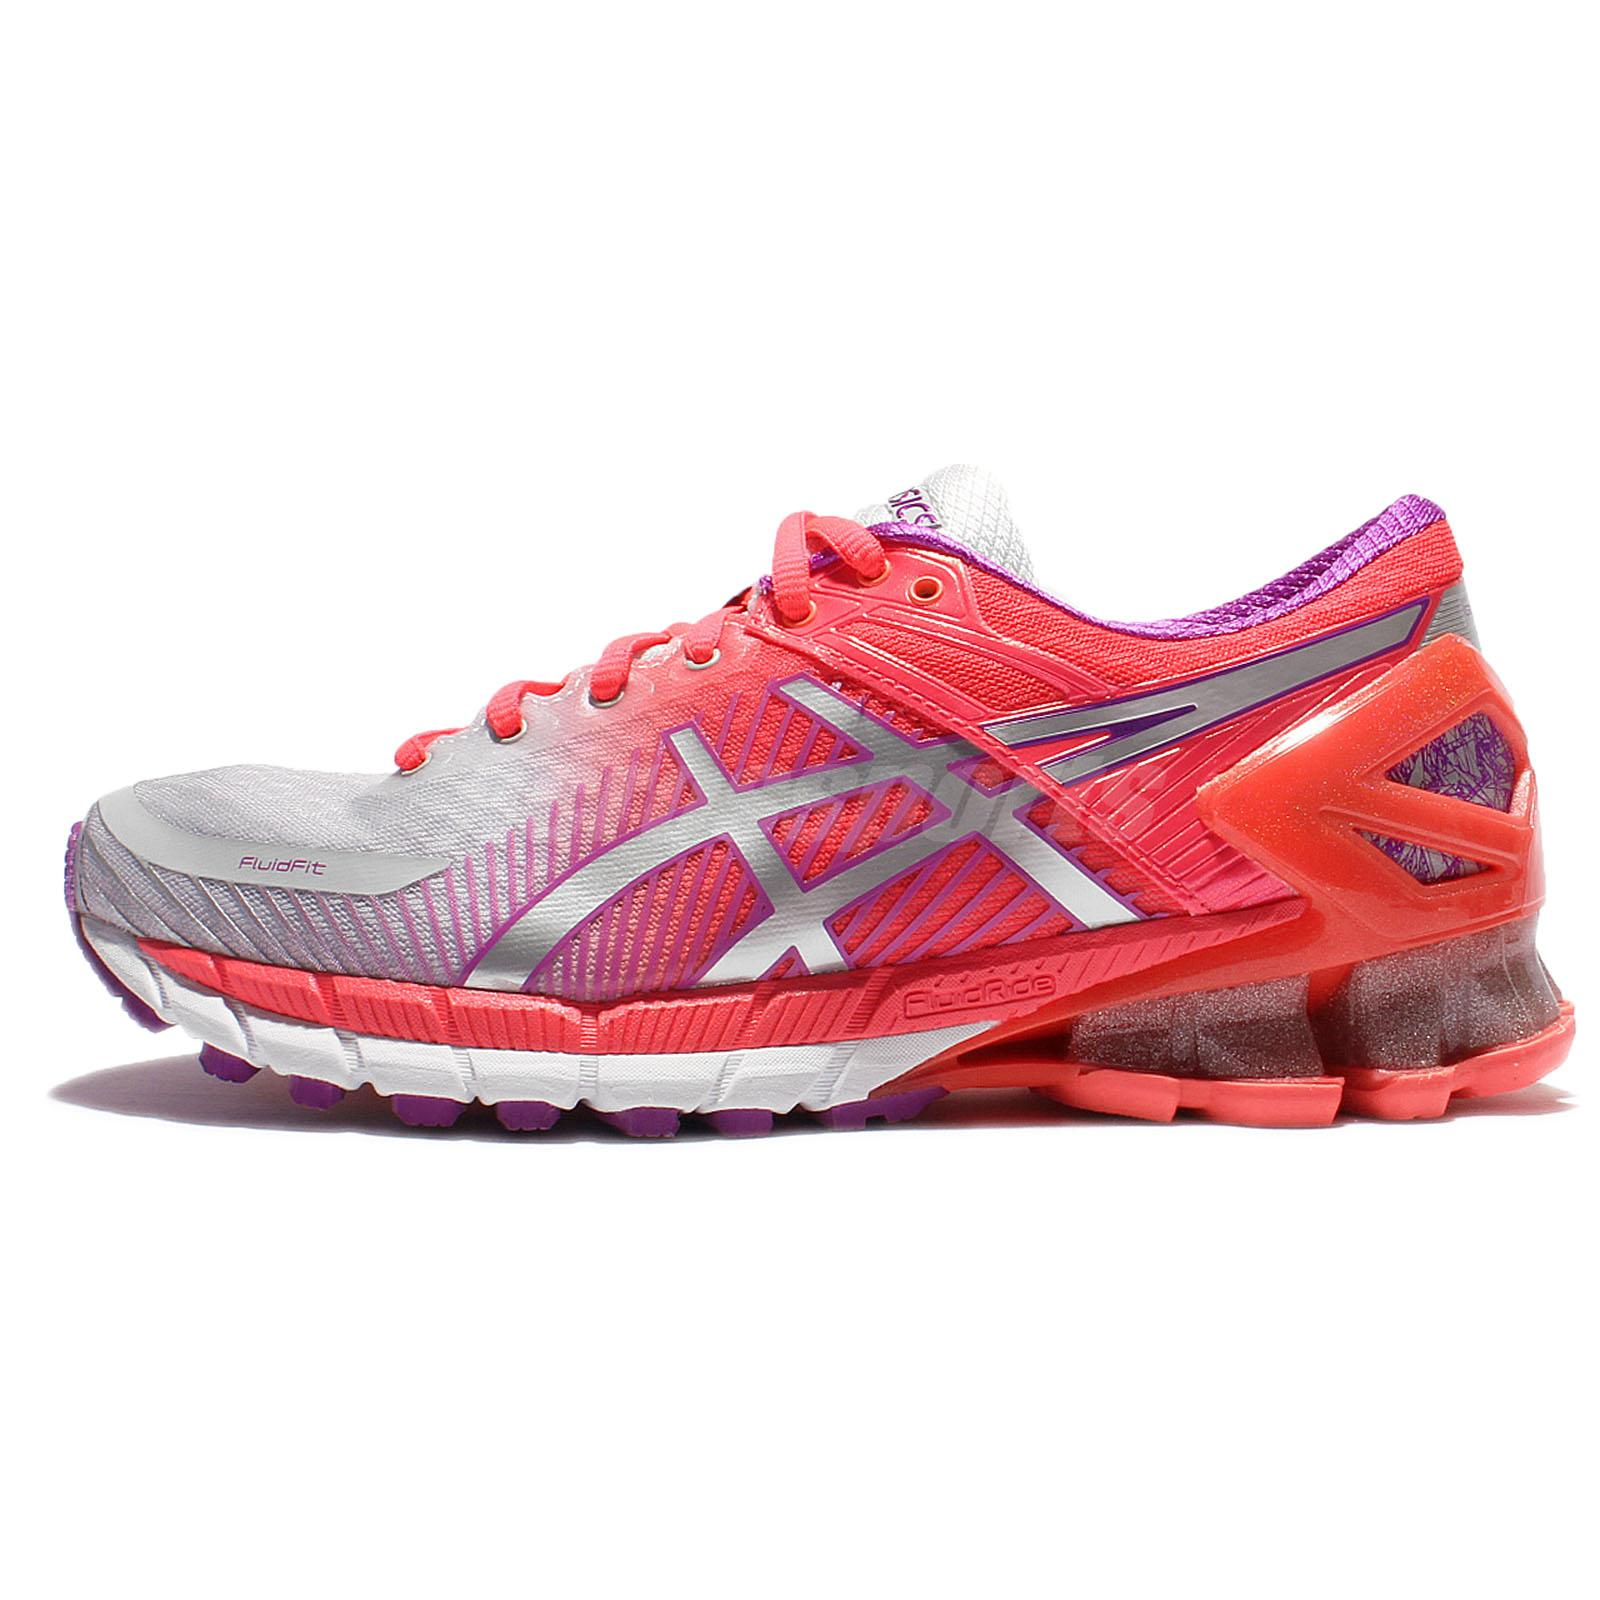 super popular 71631 f35eb Details about Asics Gel-Kinsei 6 VI Pink Silver Women Running Shoes Sneaker  Trainer T694N-9693